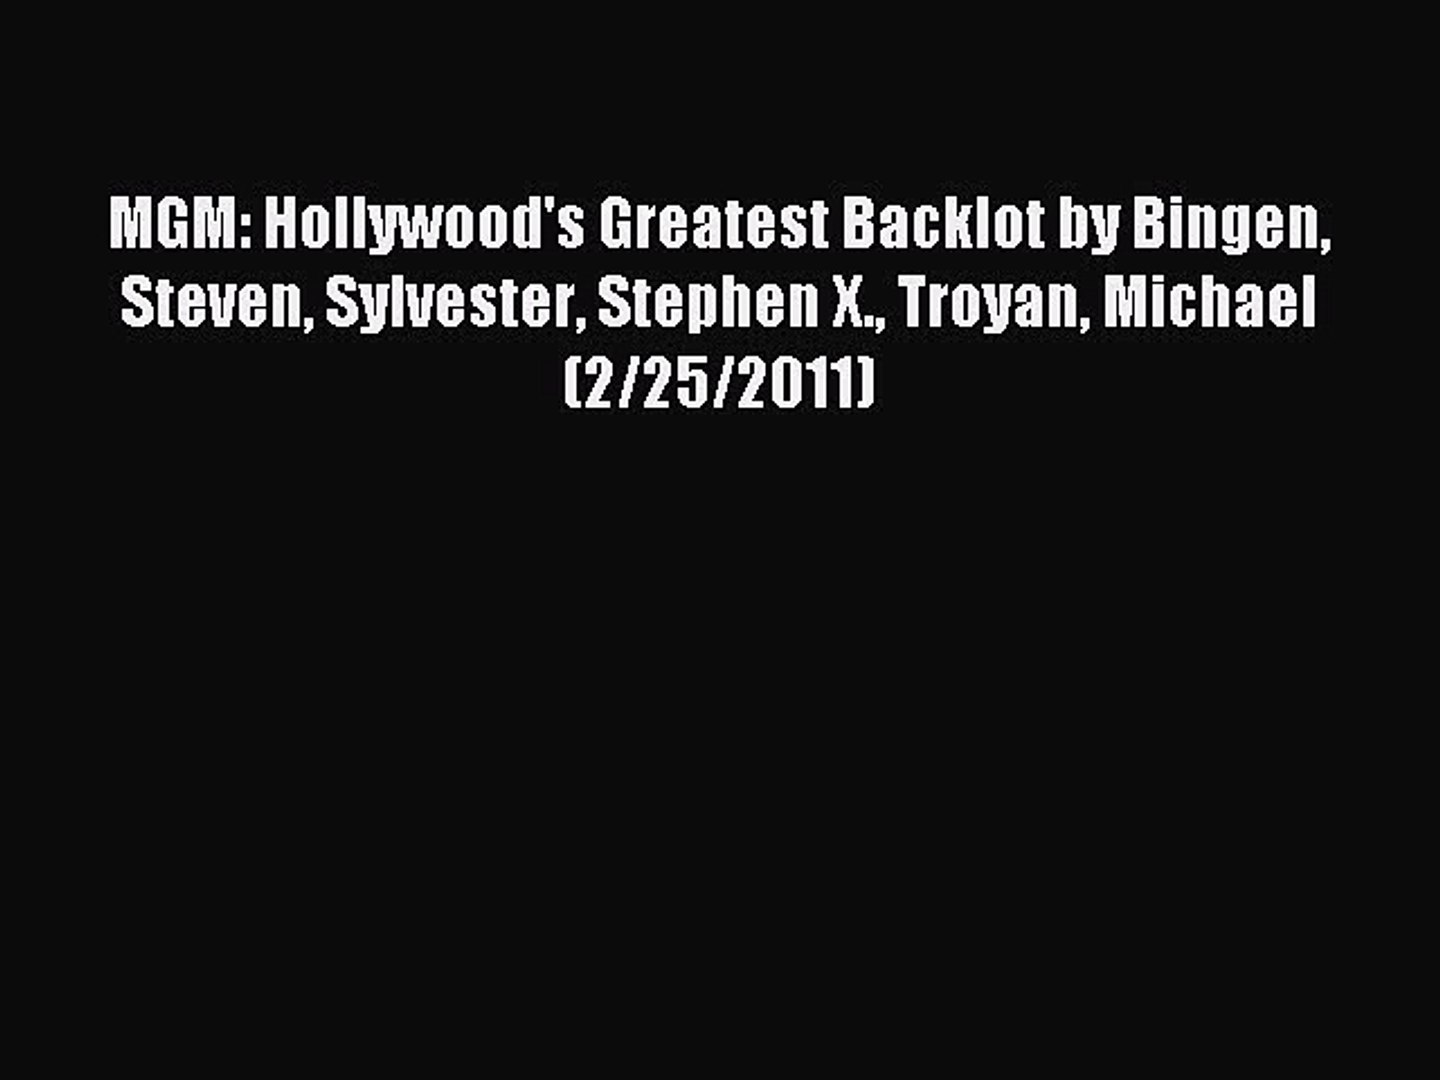 Read MGM: Hollywood's Greatest Backlot by Bingen Steven Sylvester Stephen X. Troyan Michael